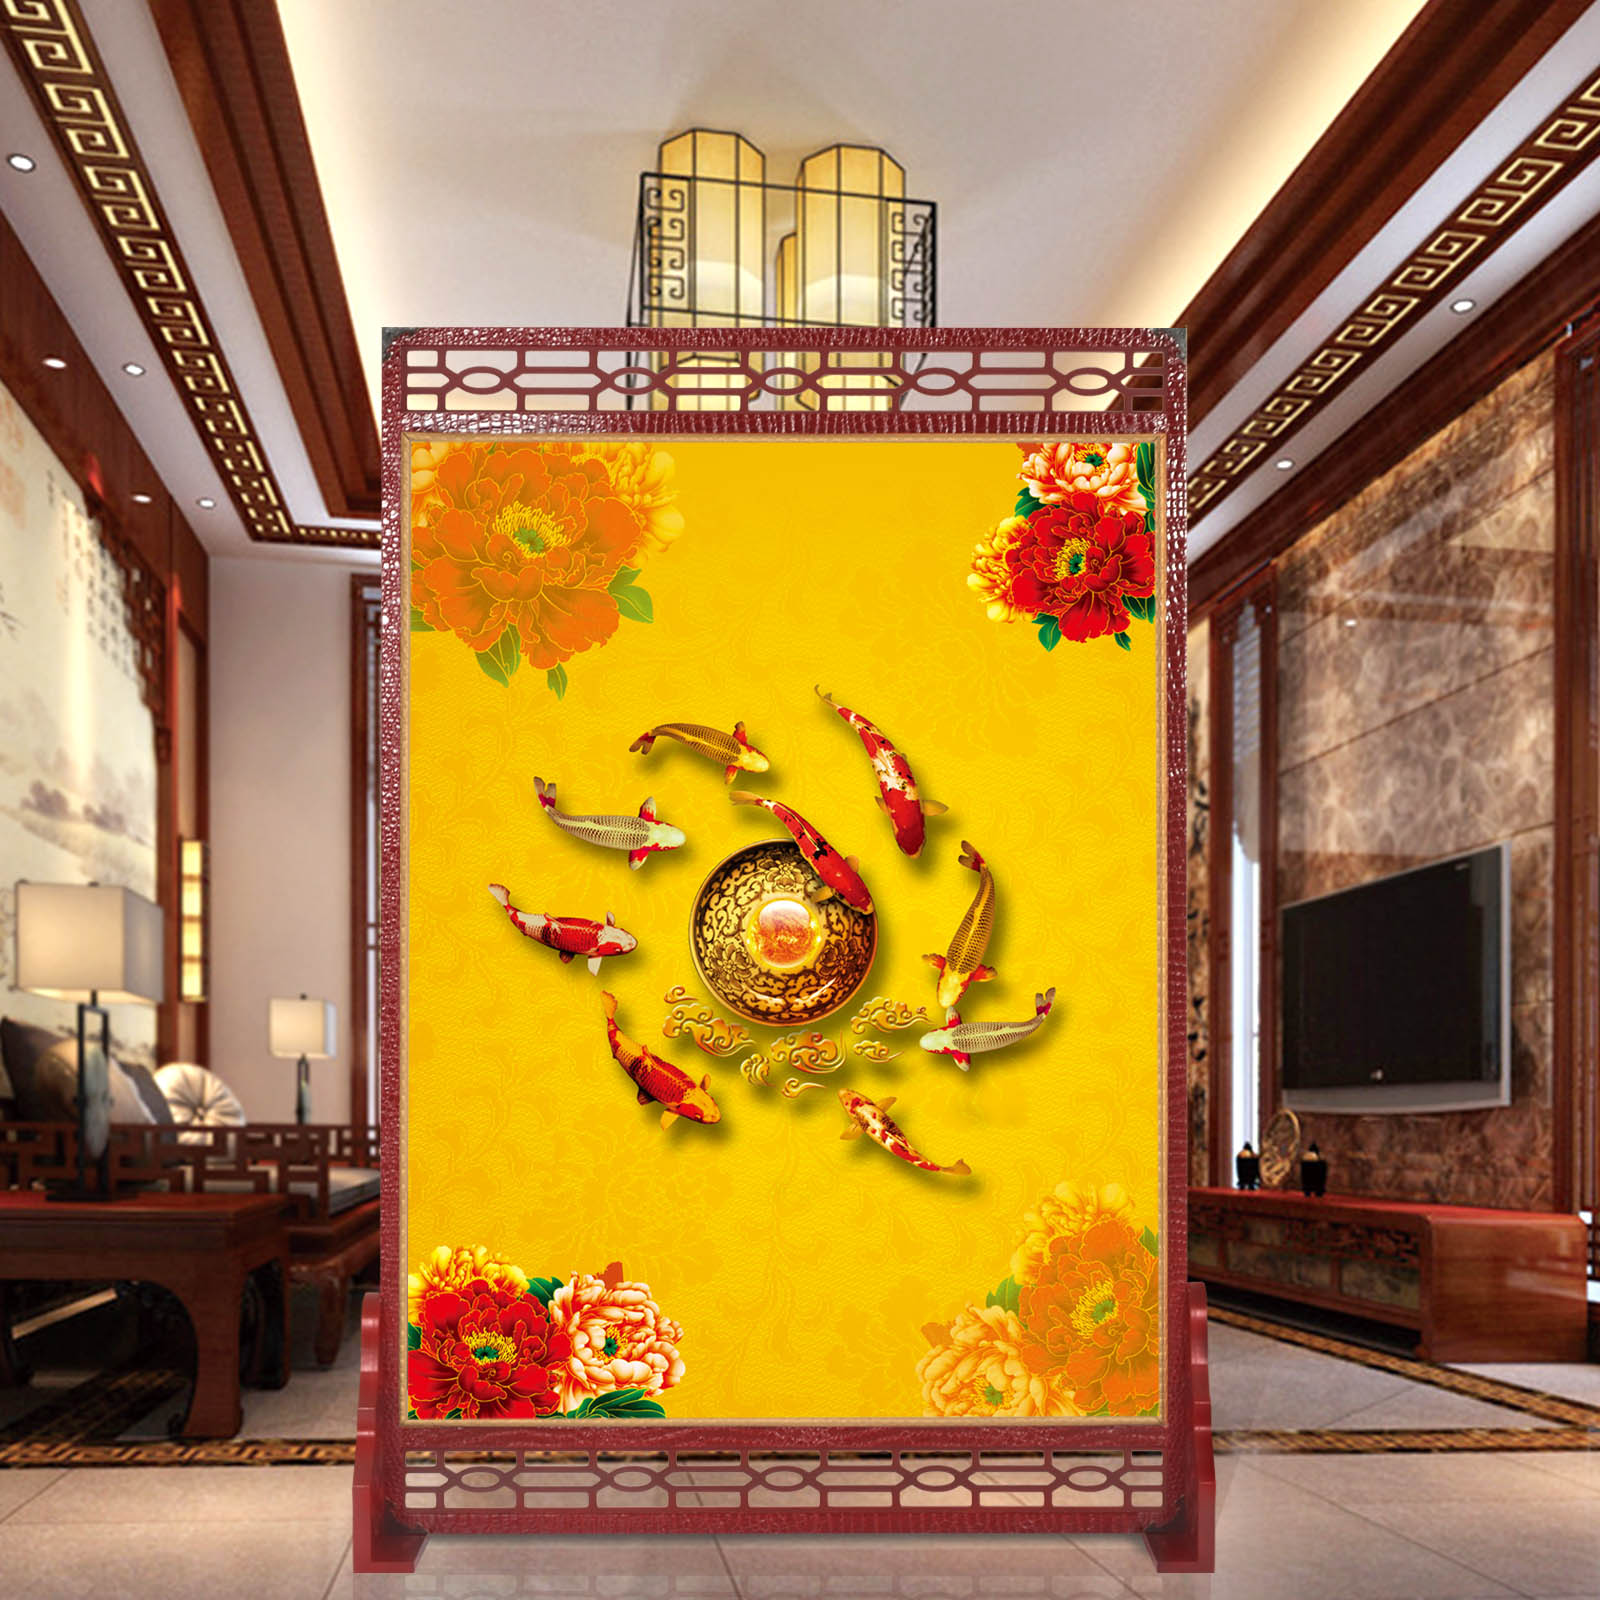 Hollow chinese screen porch off the living room folding screen hotel office folding wooden craft wood seat screen